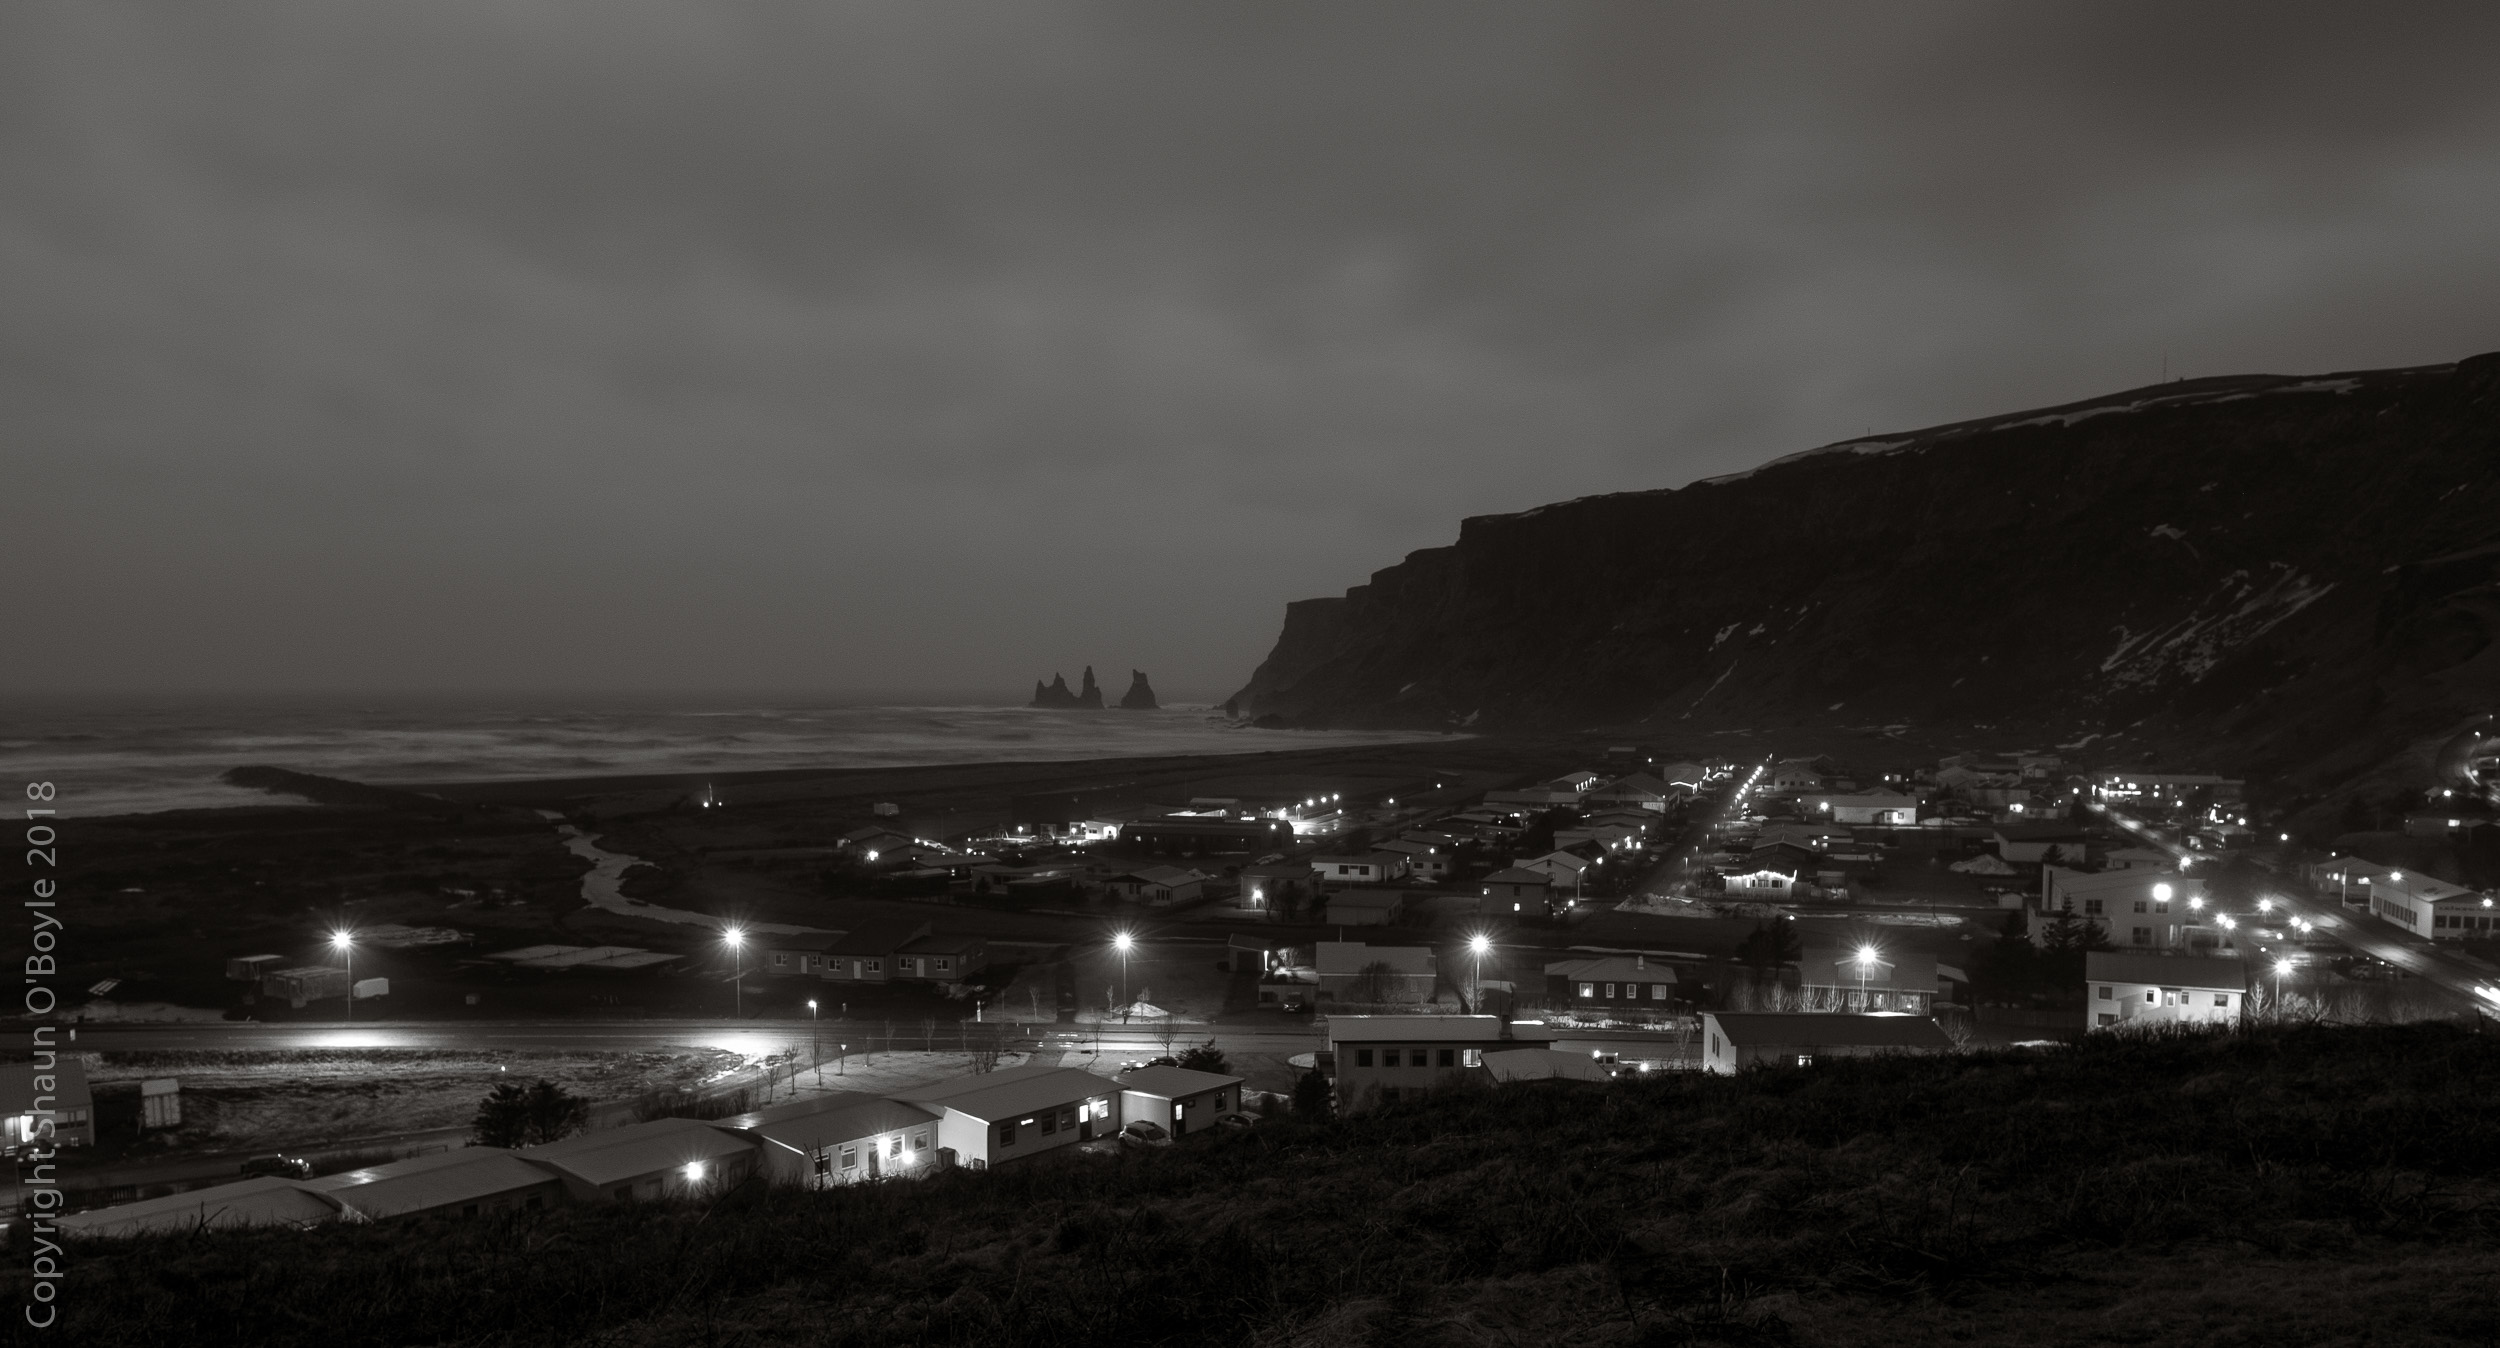 Vik, Iceland at night from the church